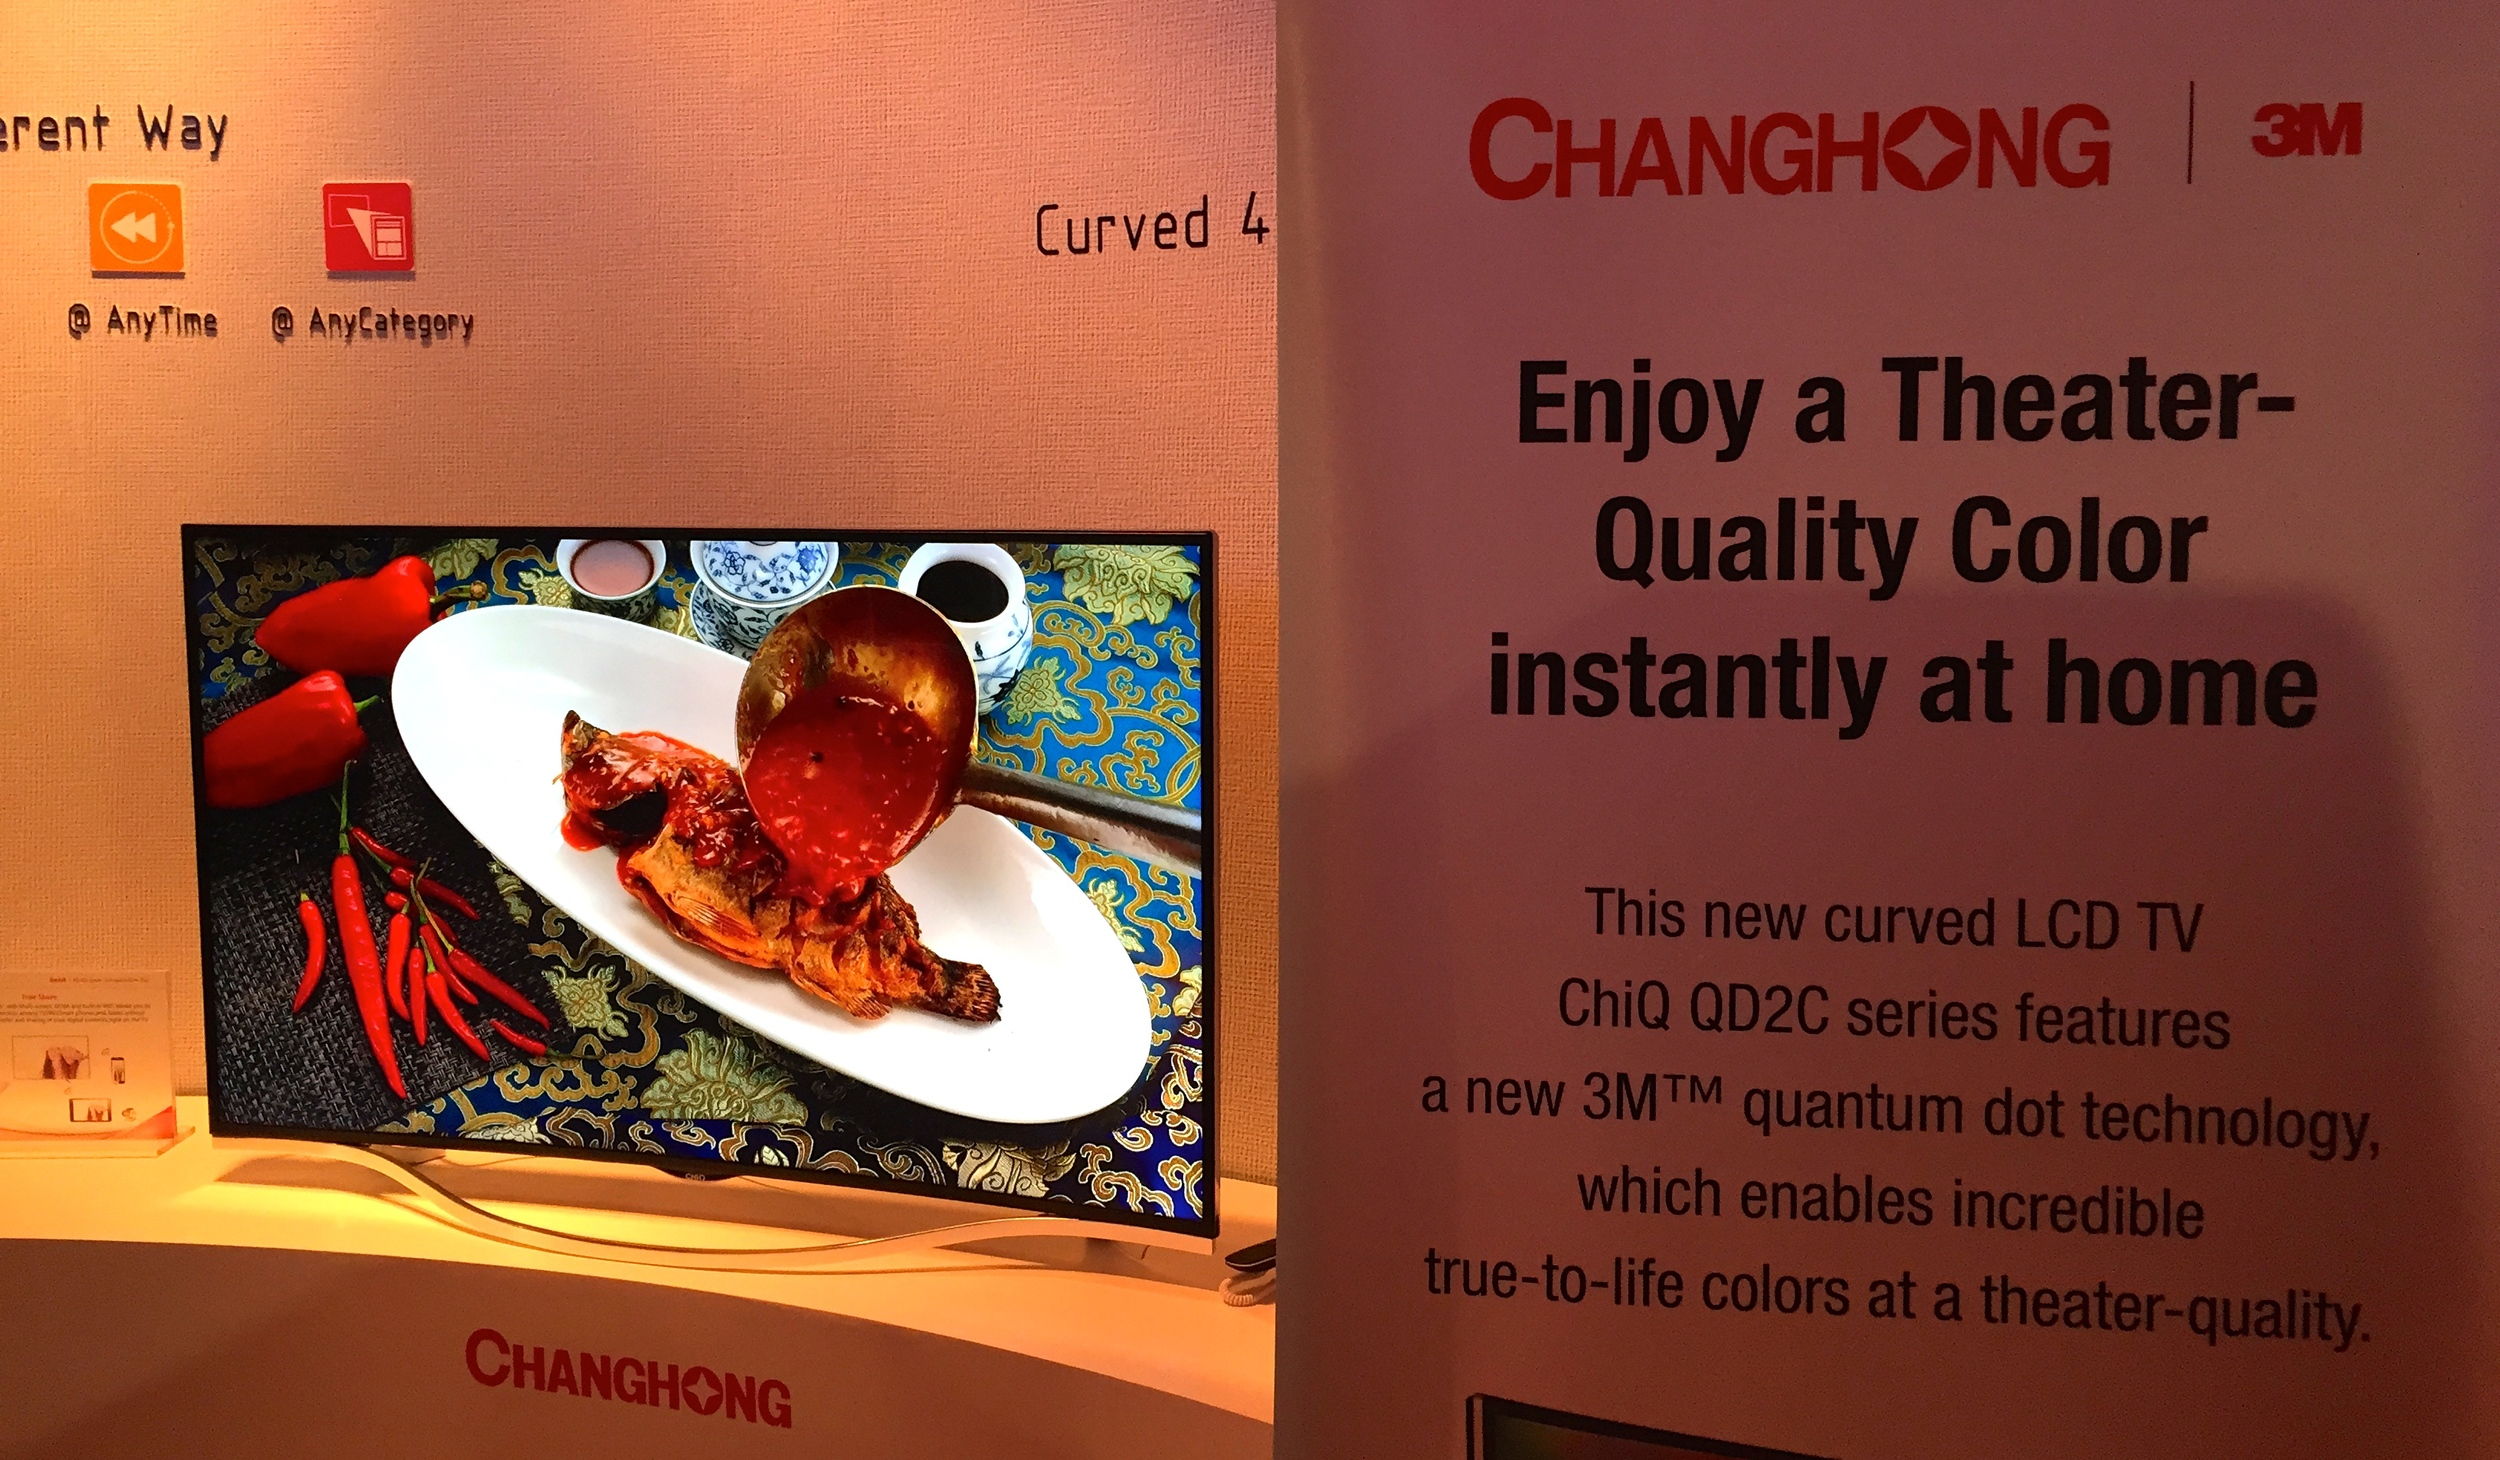 Changhong is bringing a theater quality color experience to the home with thiscurved UHD TV featuring Quantum Dot technology from Nanosys and 3M.